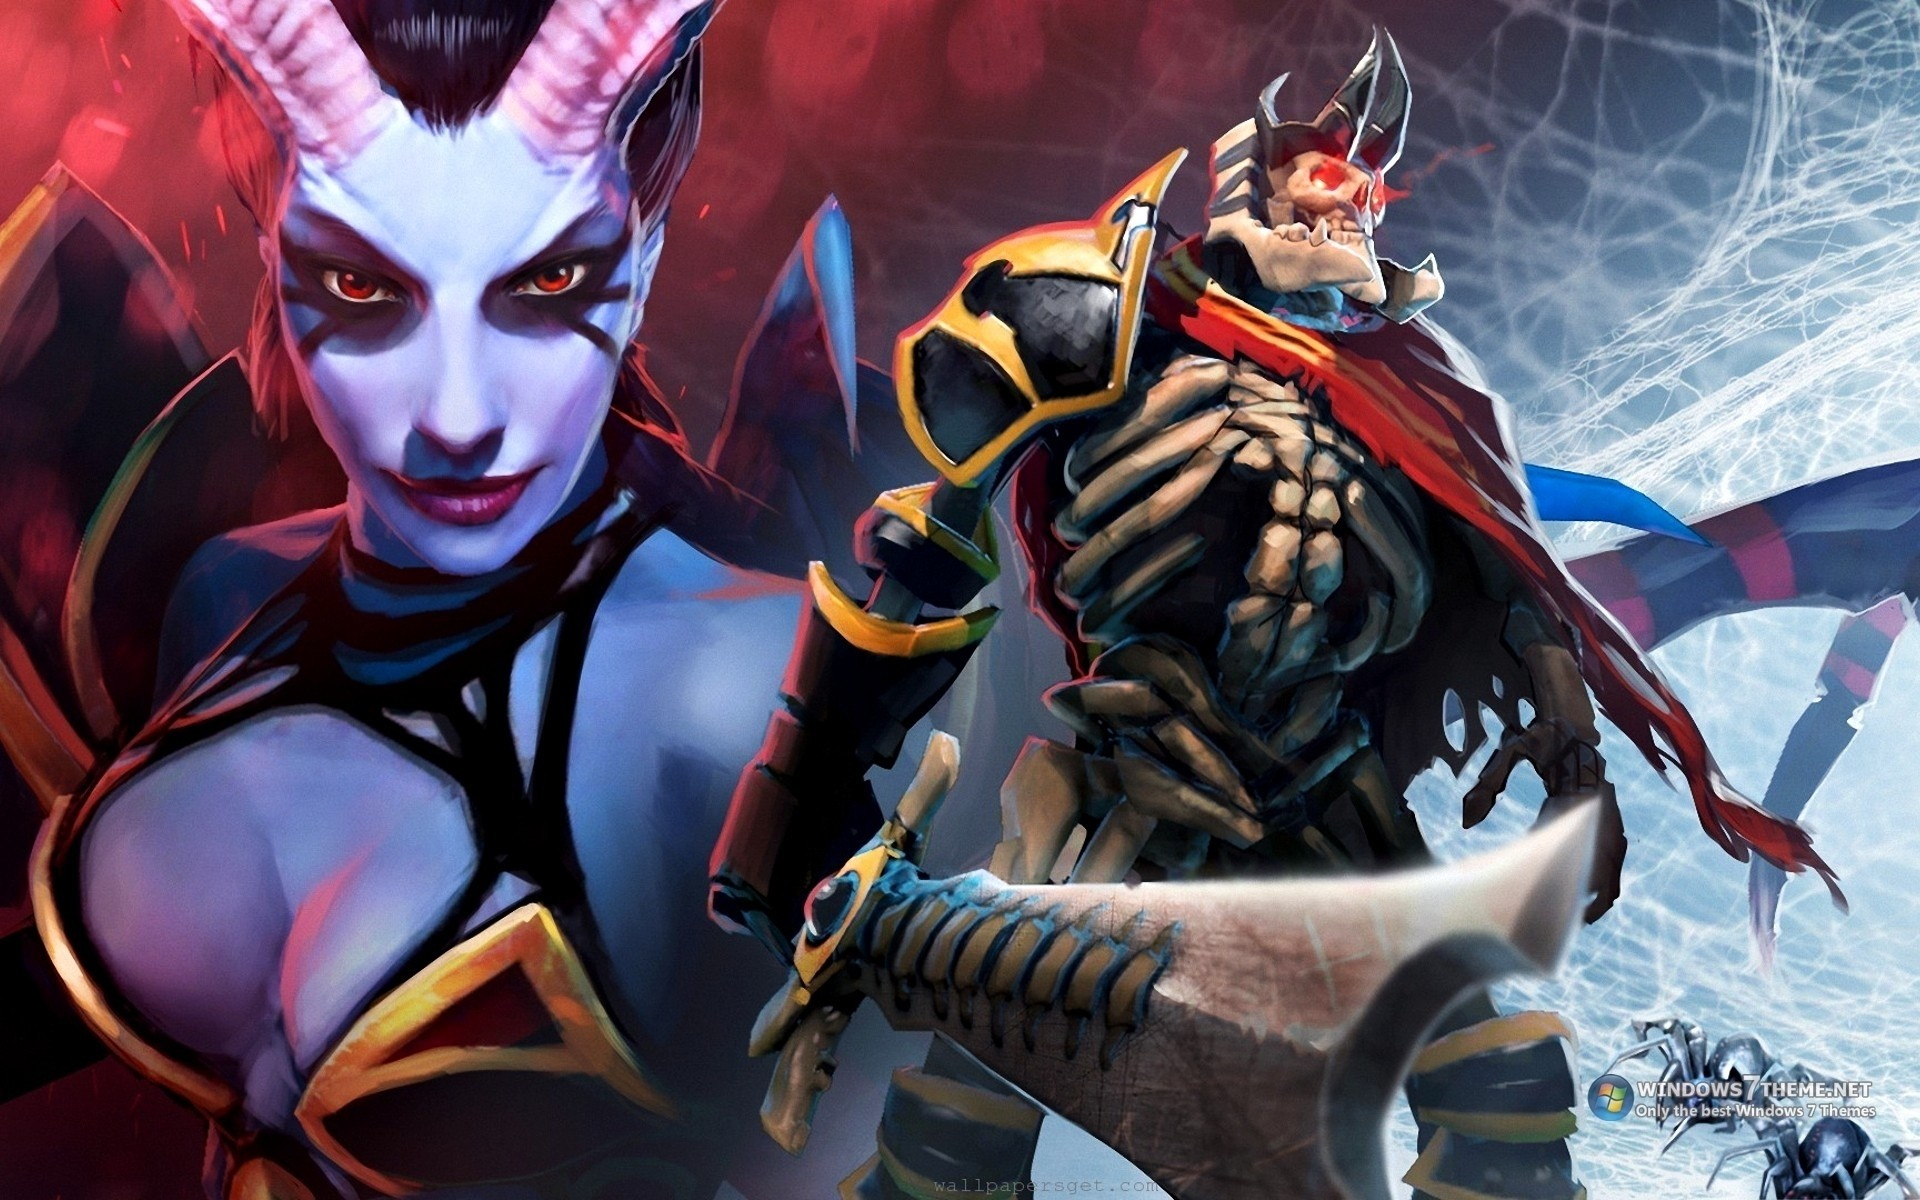 1920x1200 succubus dota 2 skeleton king queen of pain game akasha Wallpaper HD